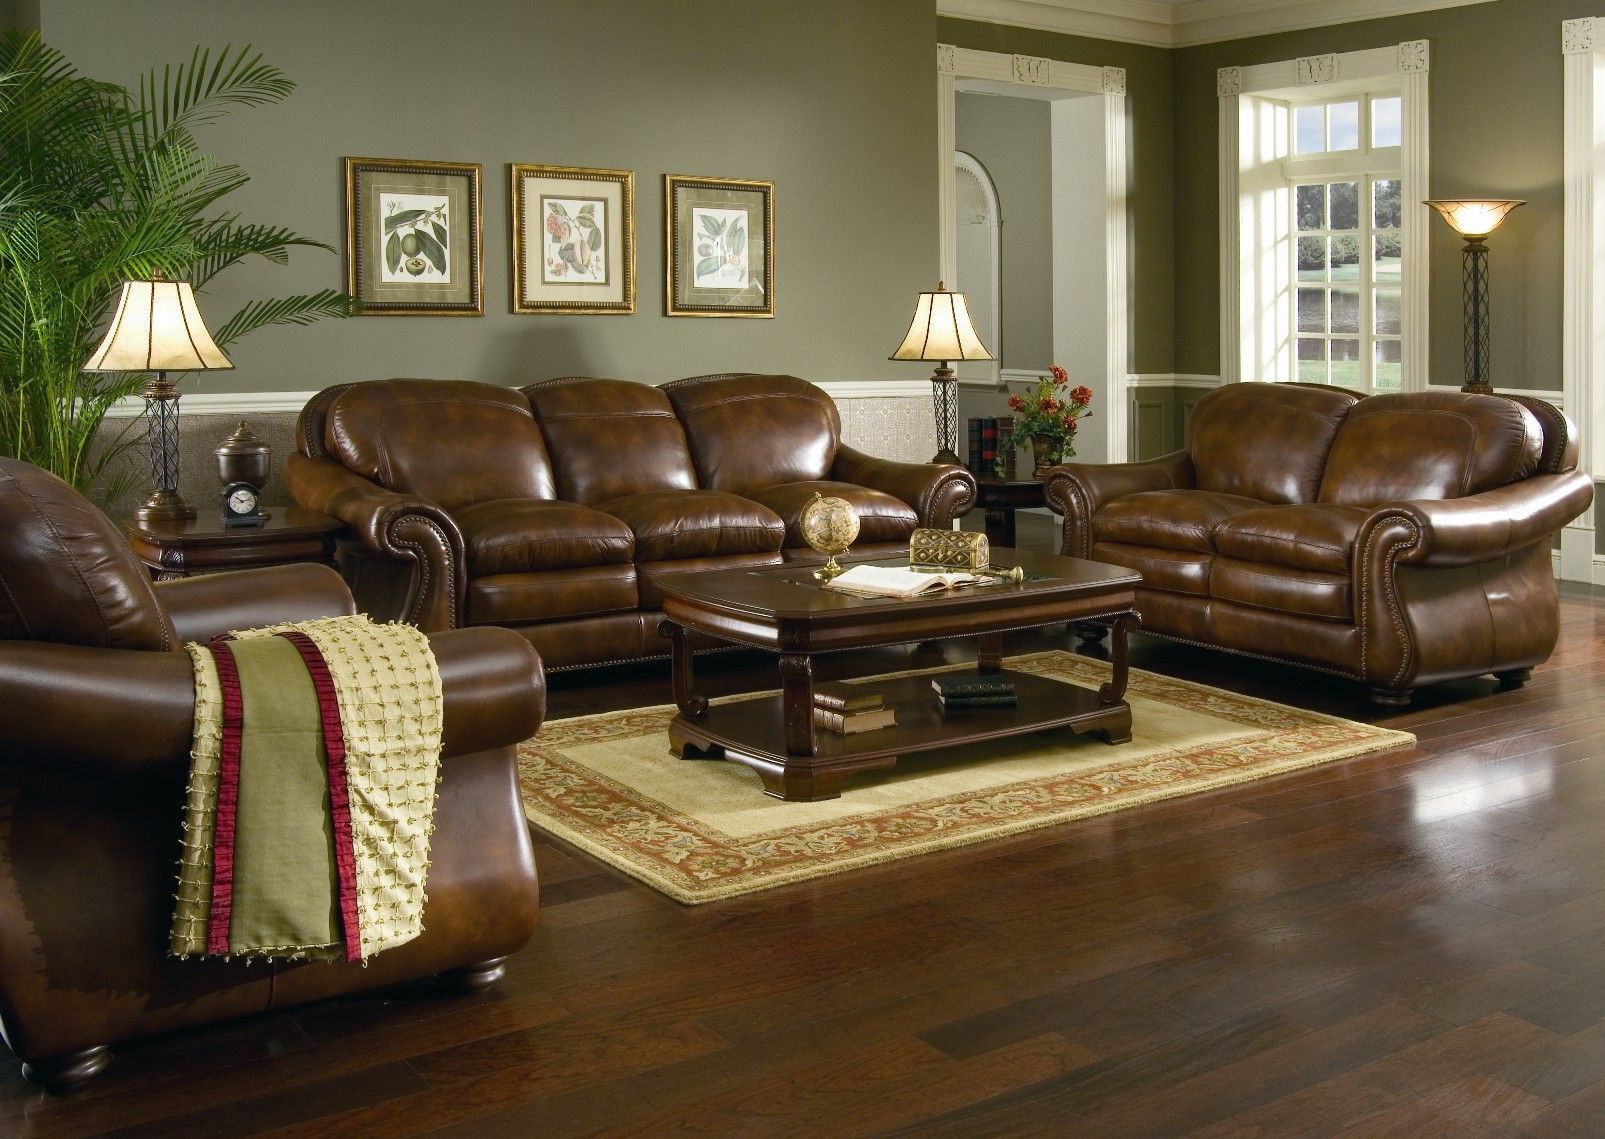 25 Brown Leather Furniture On. Living Room Decorating Ideas With Leather Furniture. 145 Fabulous Designer Living Rooms Furniture Boho and Hardware. 25 Leather Living Rooms Onleather